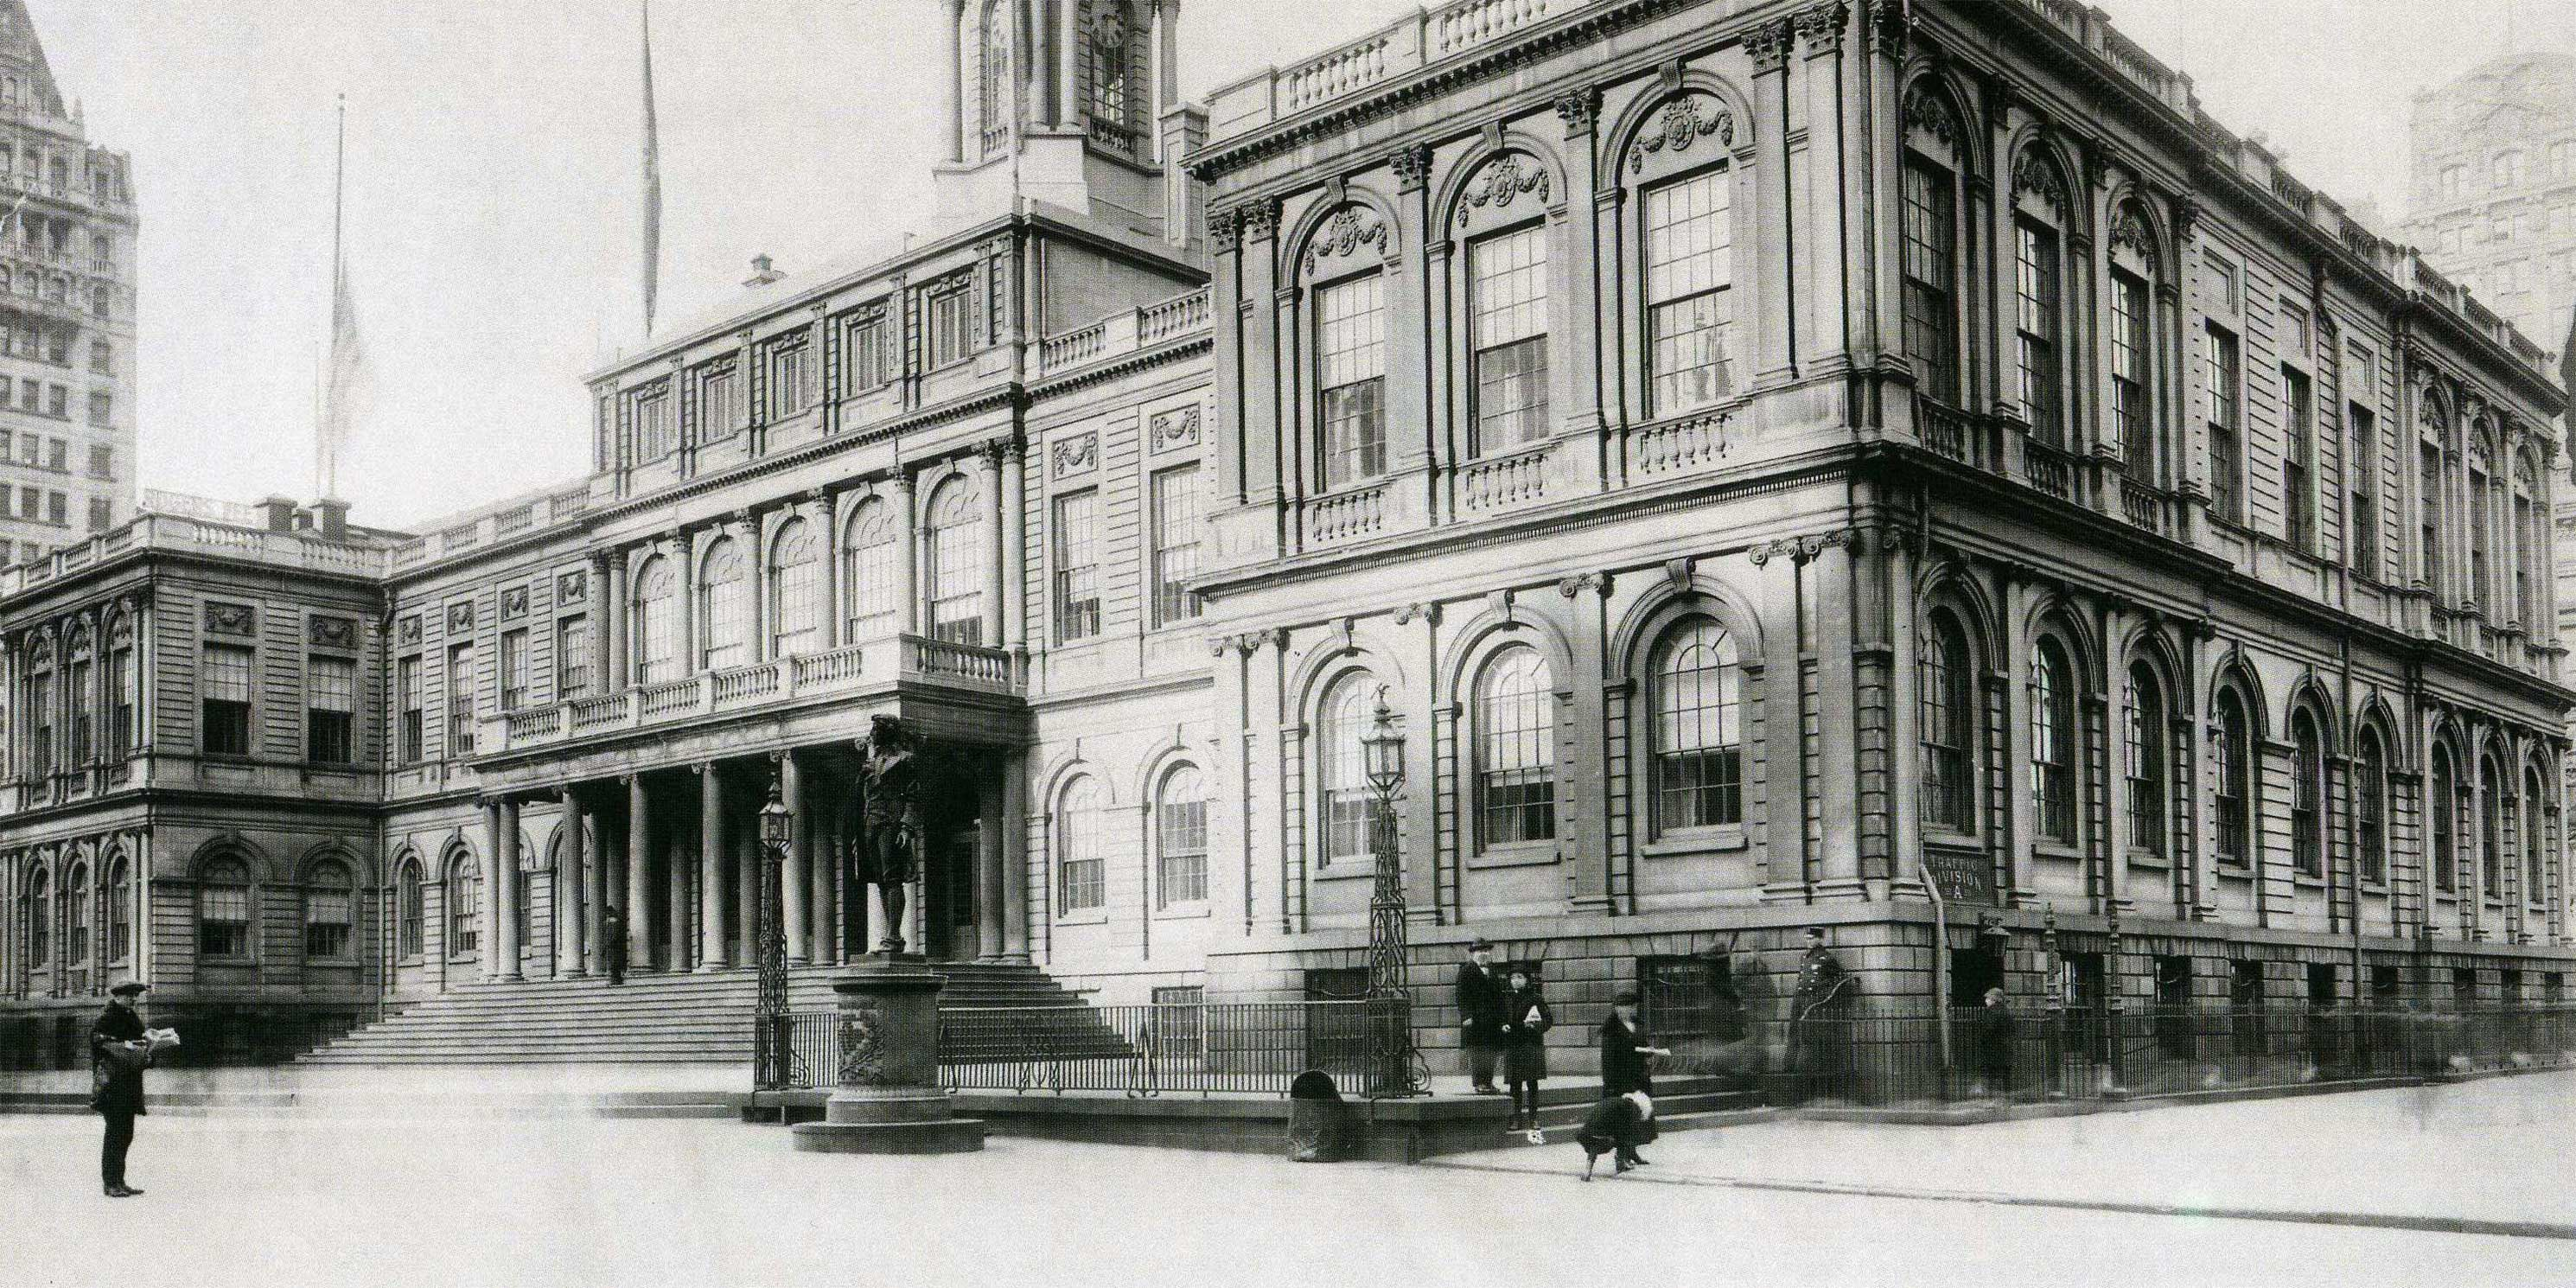 exterior of New York City Hall in 1919